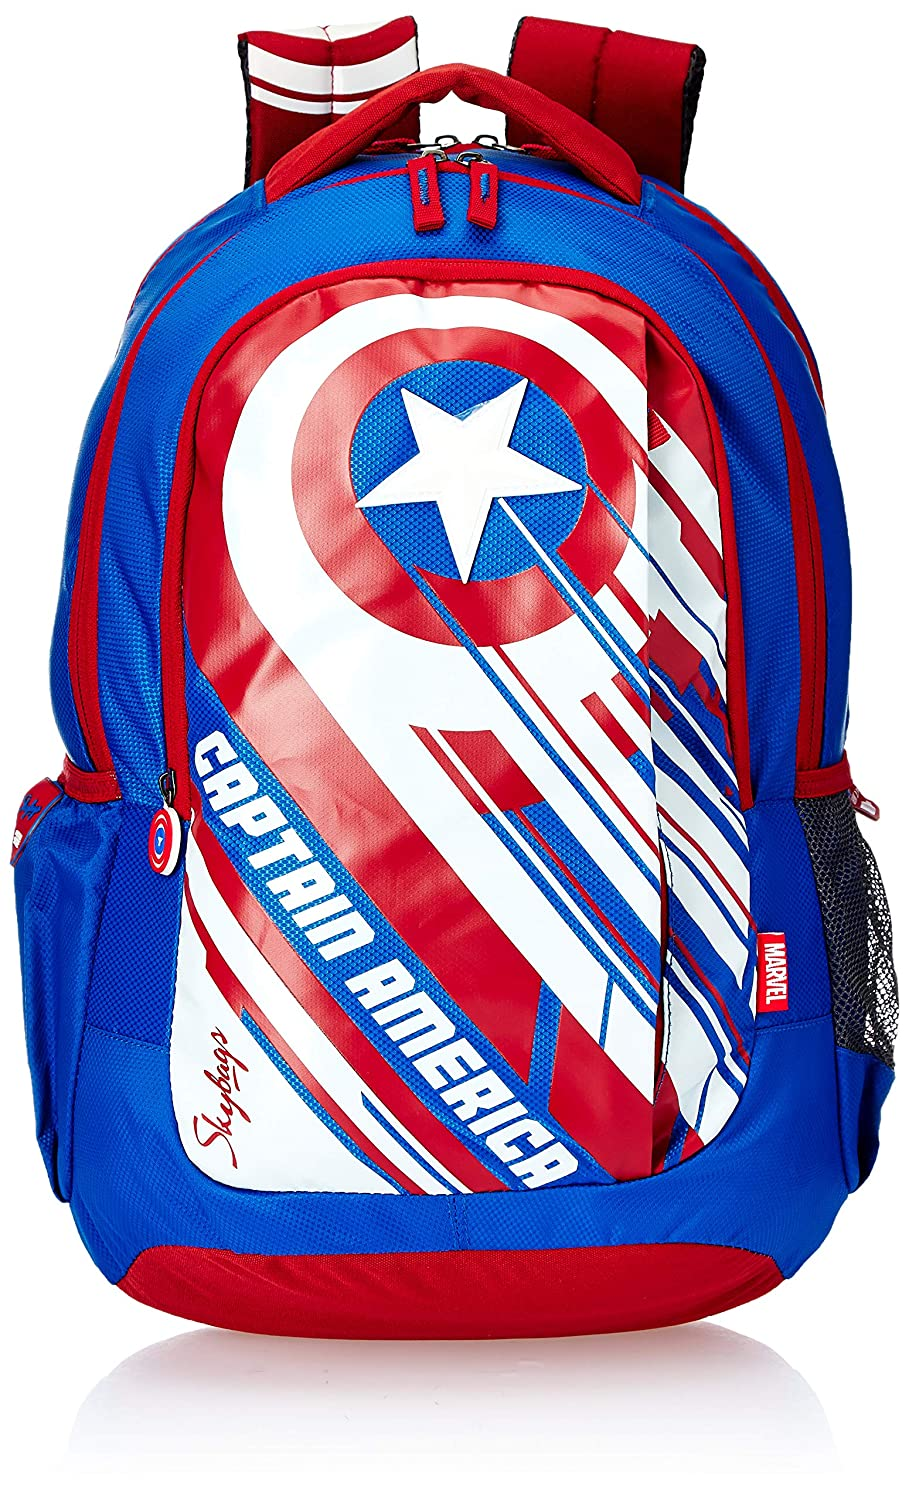 Skybags Marvel Champ 10 18 cms Blue Casual Backpack (MARVEL CHAMP 10)